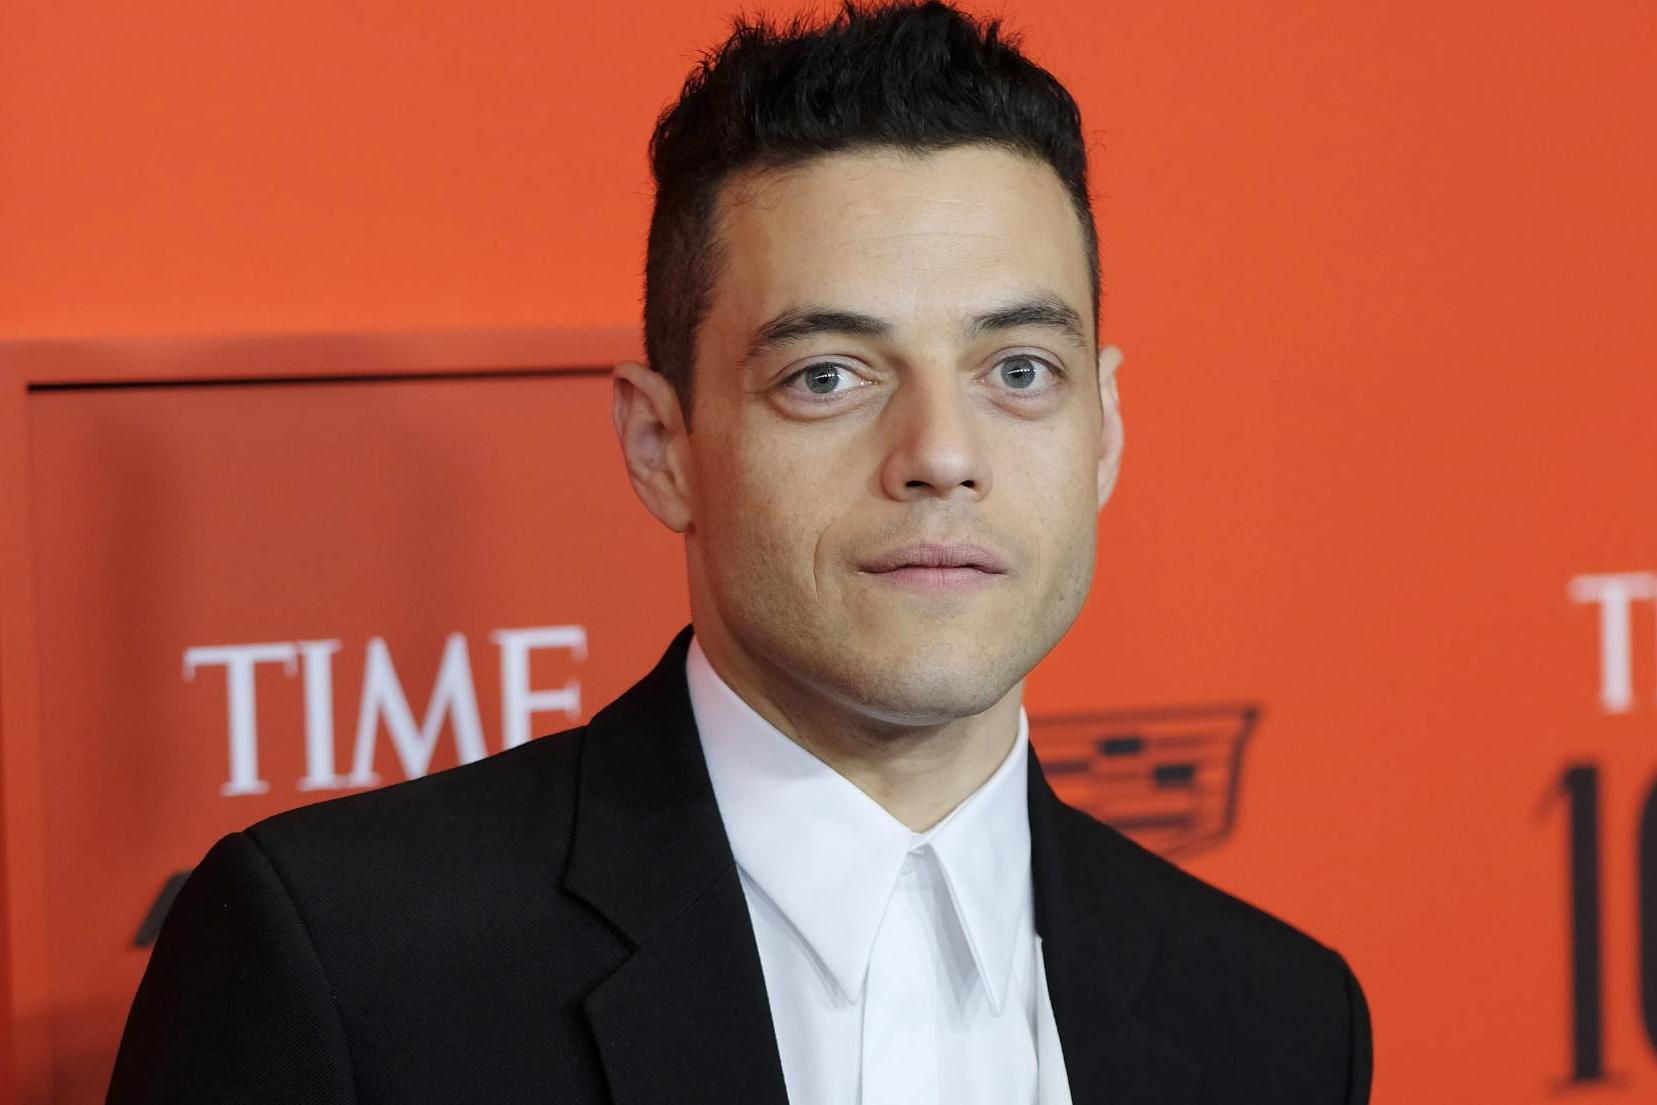 Rami Malek - latest news, breaking stories and comment - The